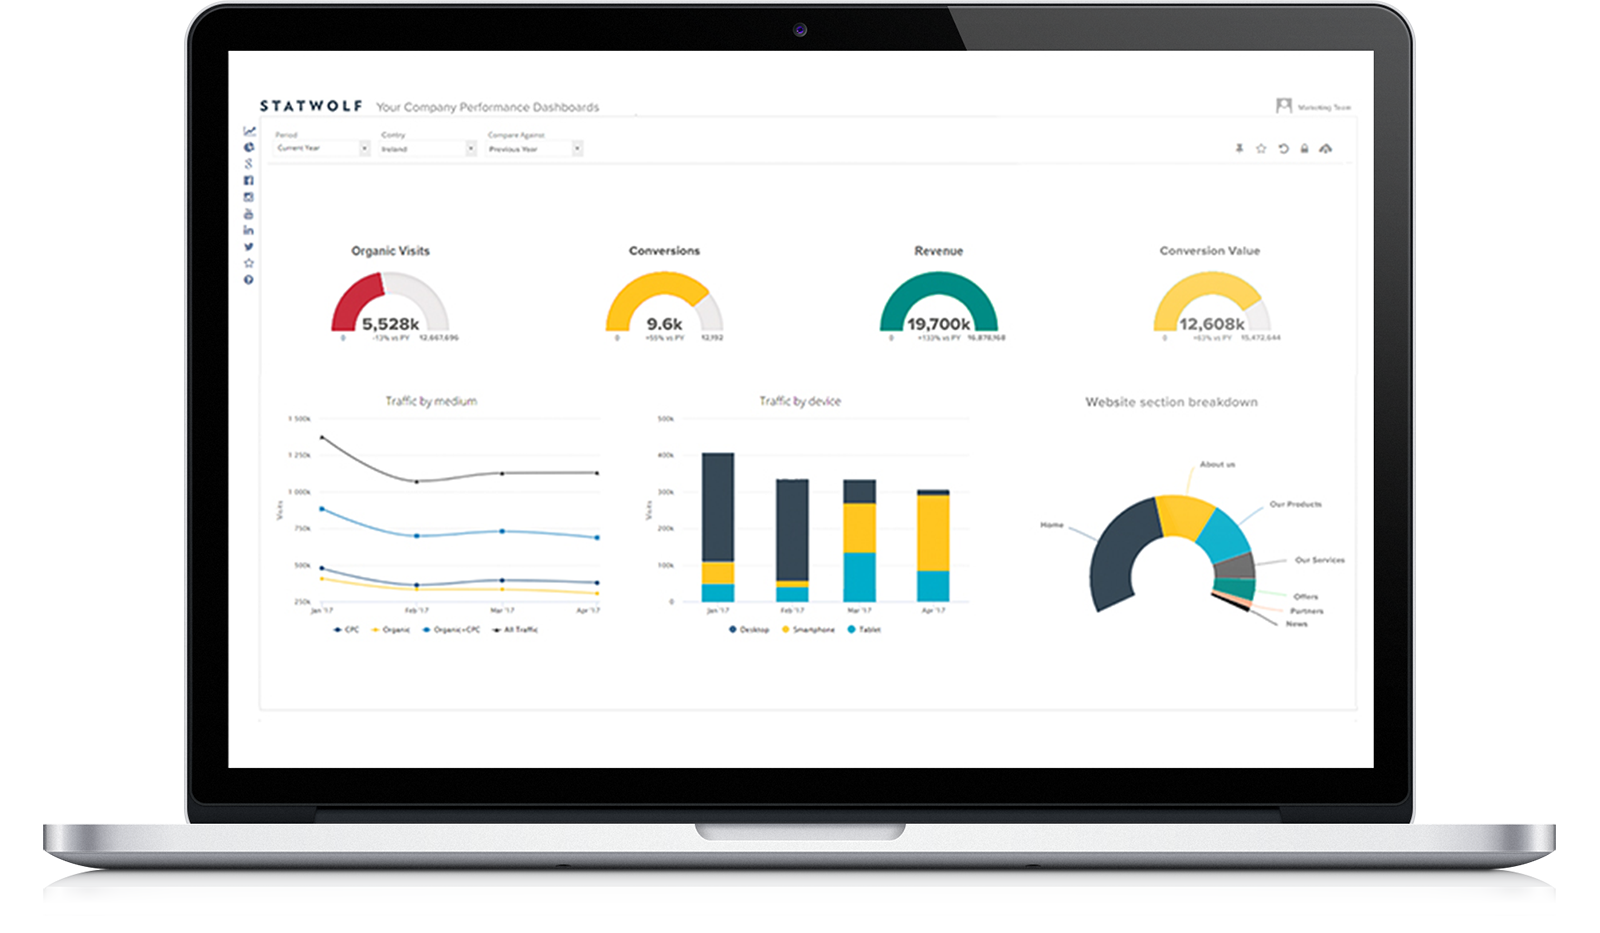 Statwolf Digital Marketing Dashboards and Advanced Data Science